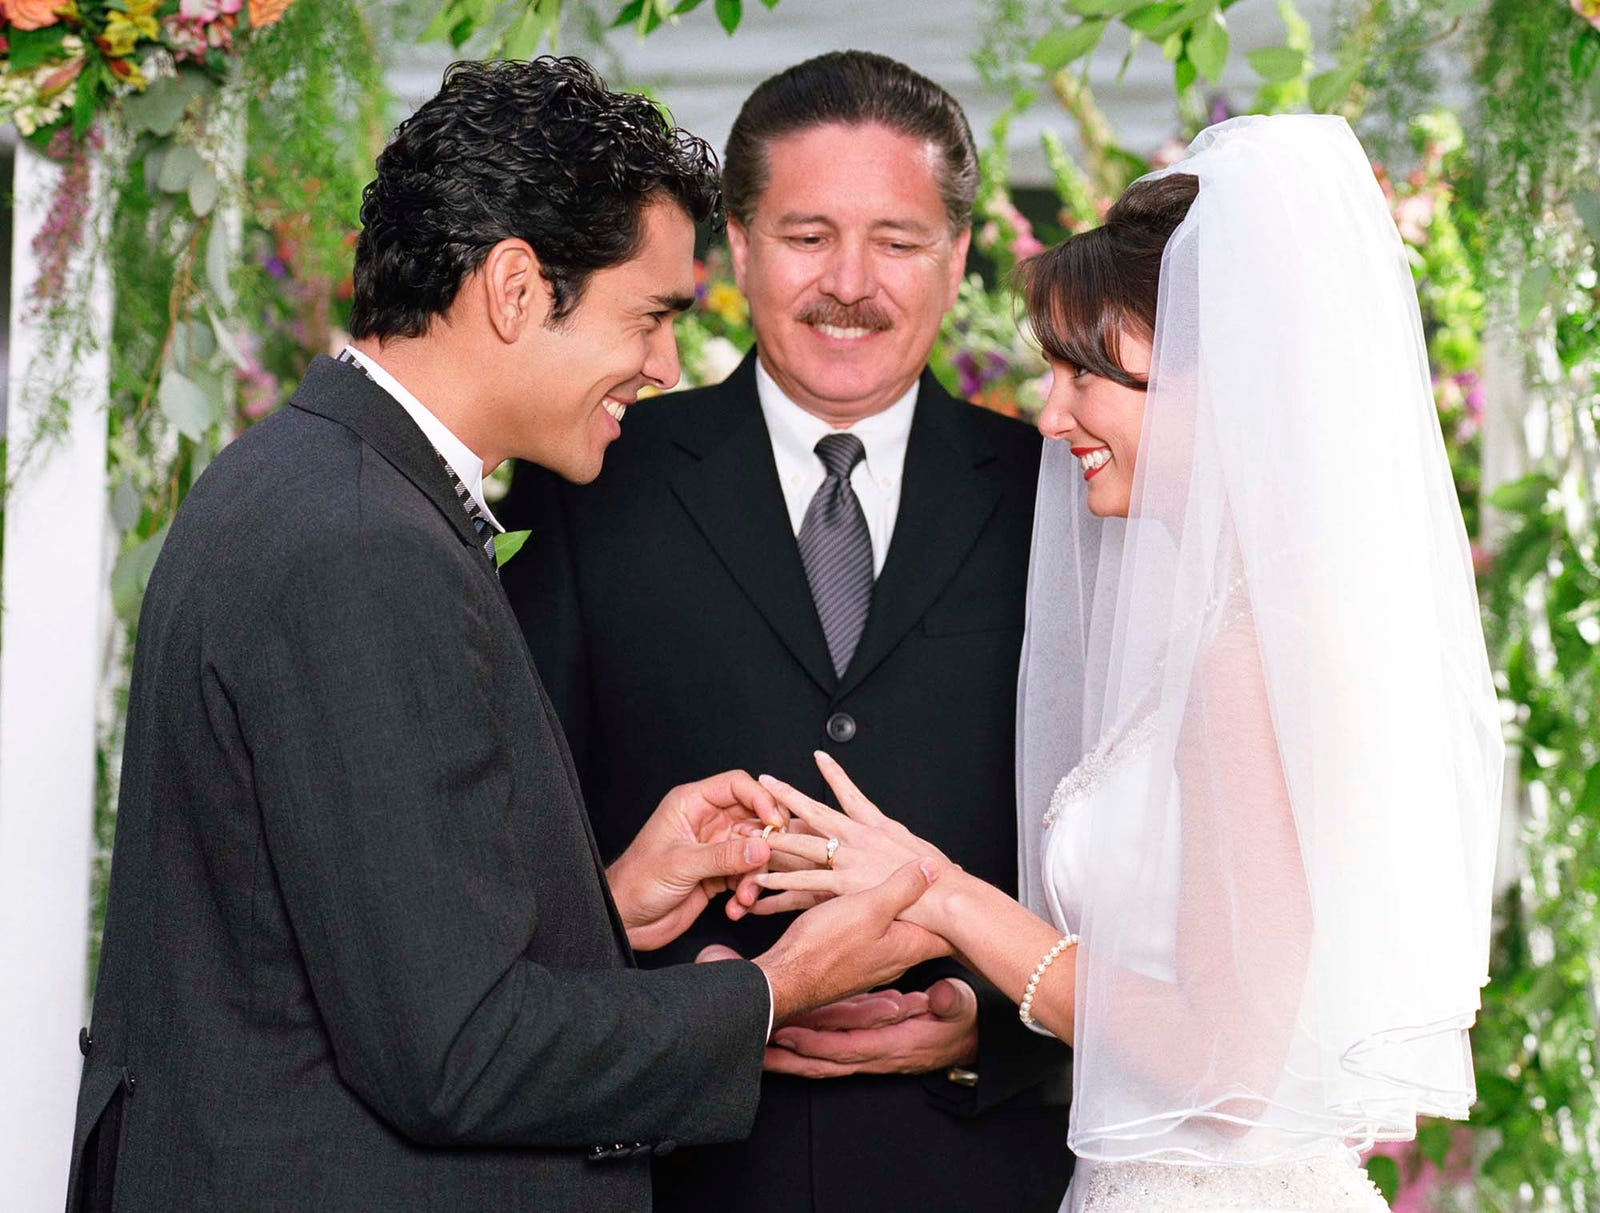 Wedding Vows Explicitly Mention Price Of Ceremony